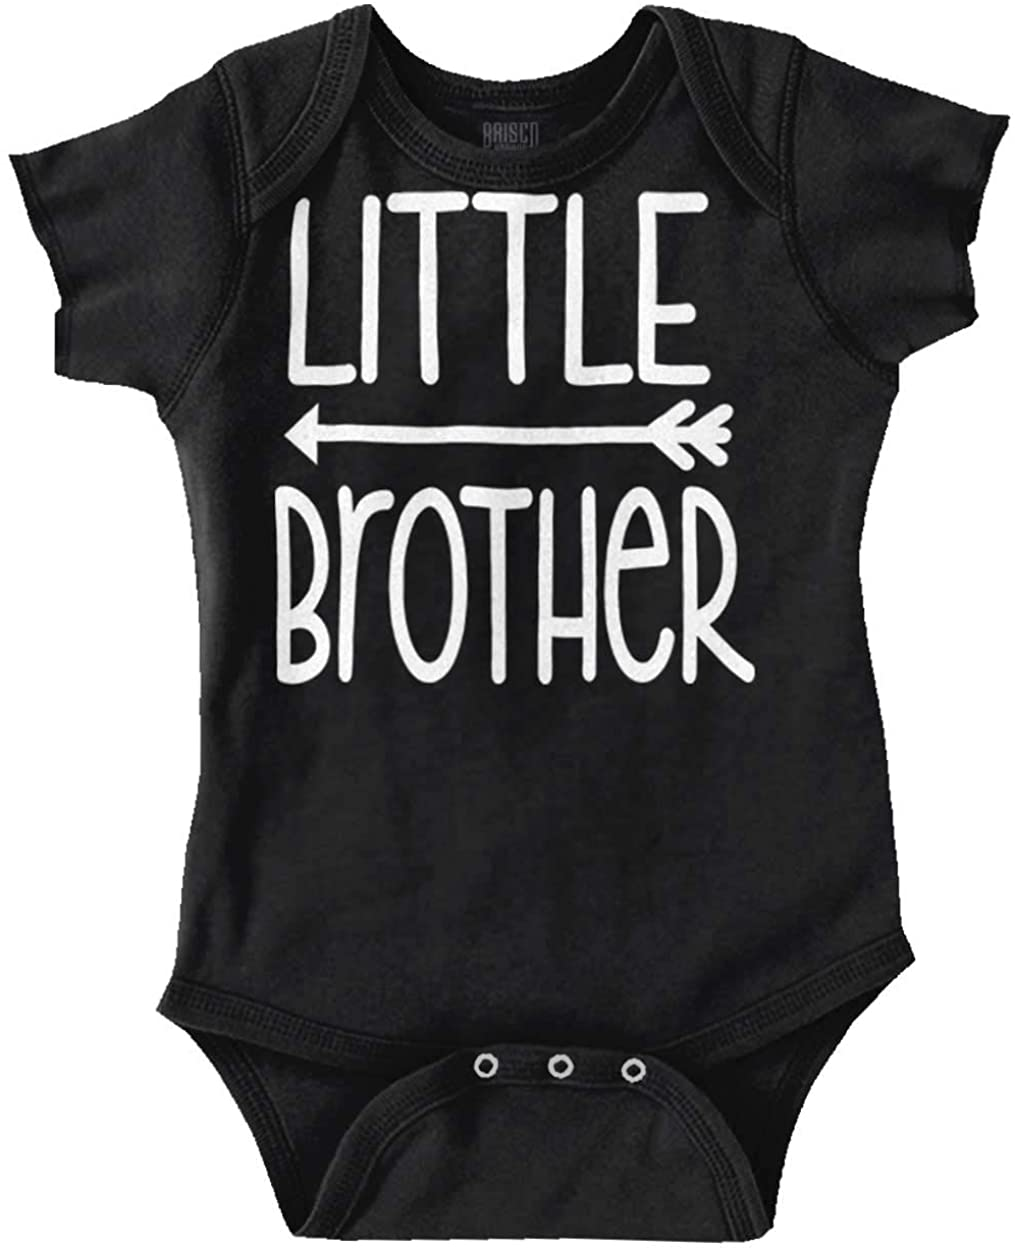 Little Brother Adorable Newborn Sibling Baby Romper Bodysuits